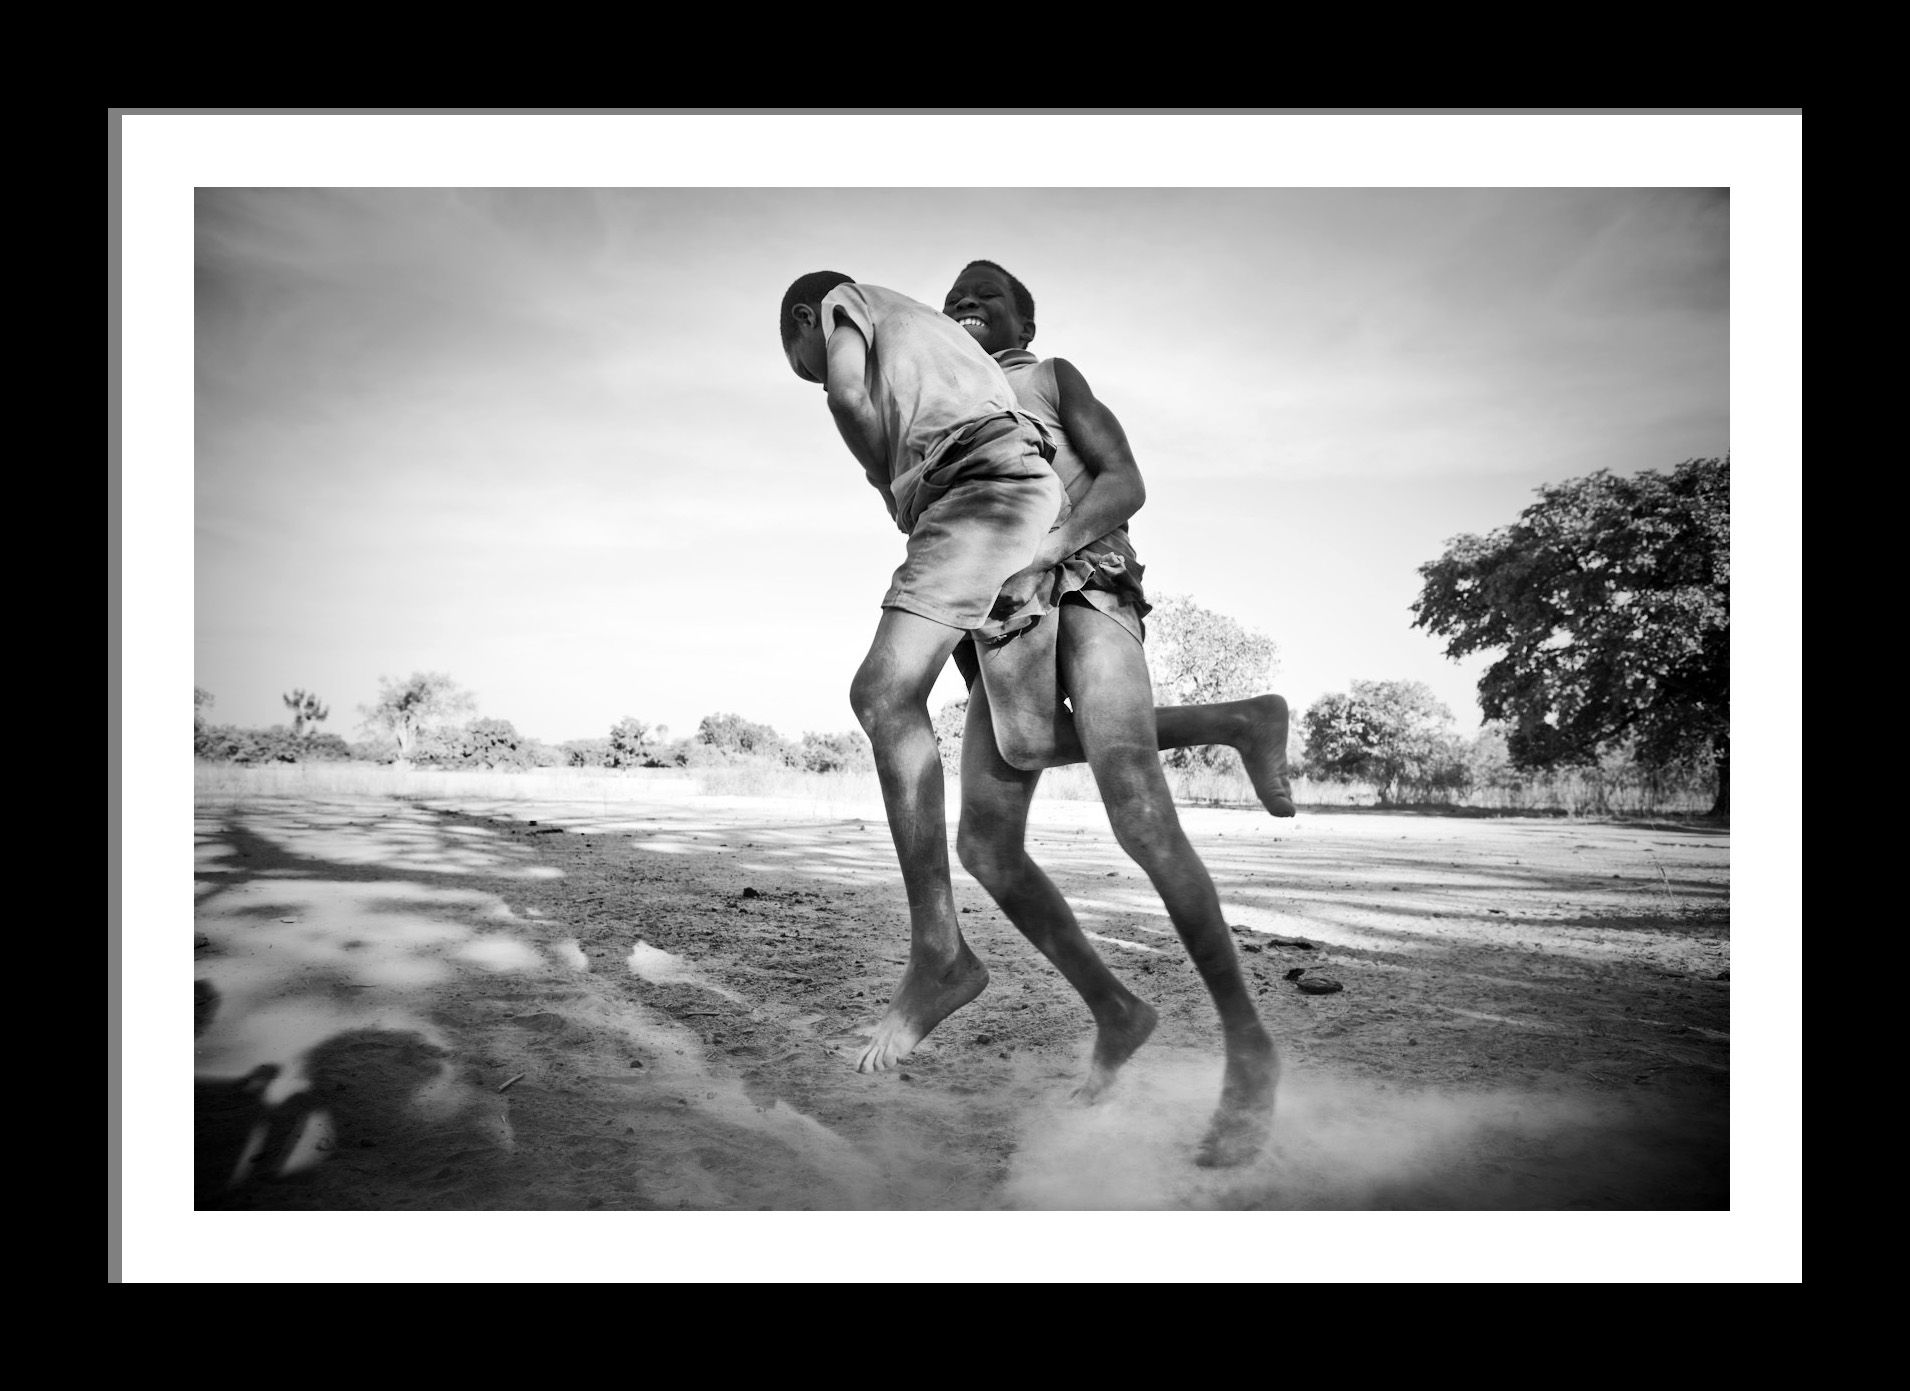 Boys wrestling the gambia west africa Fine art photography